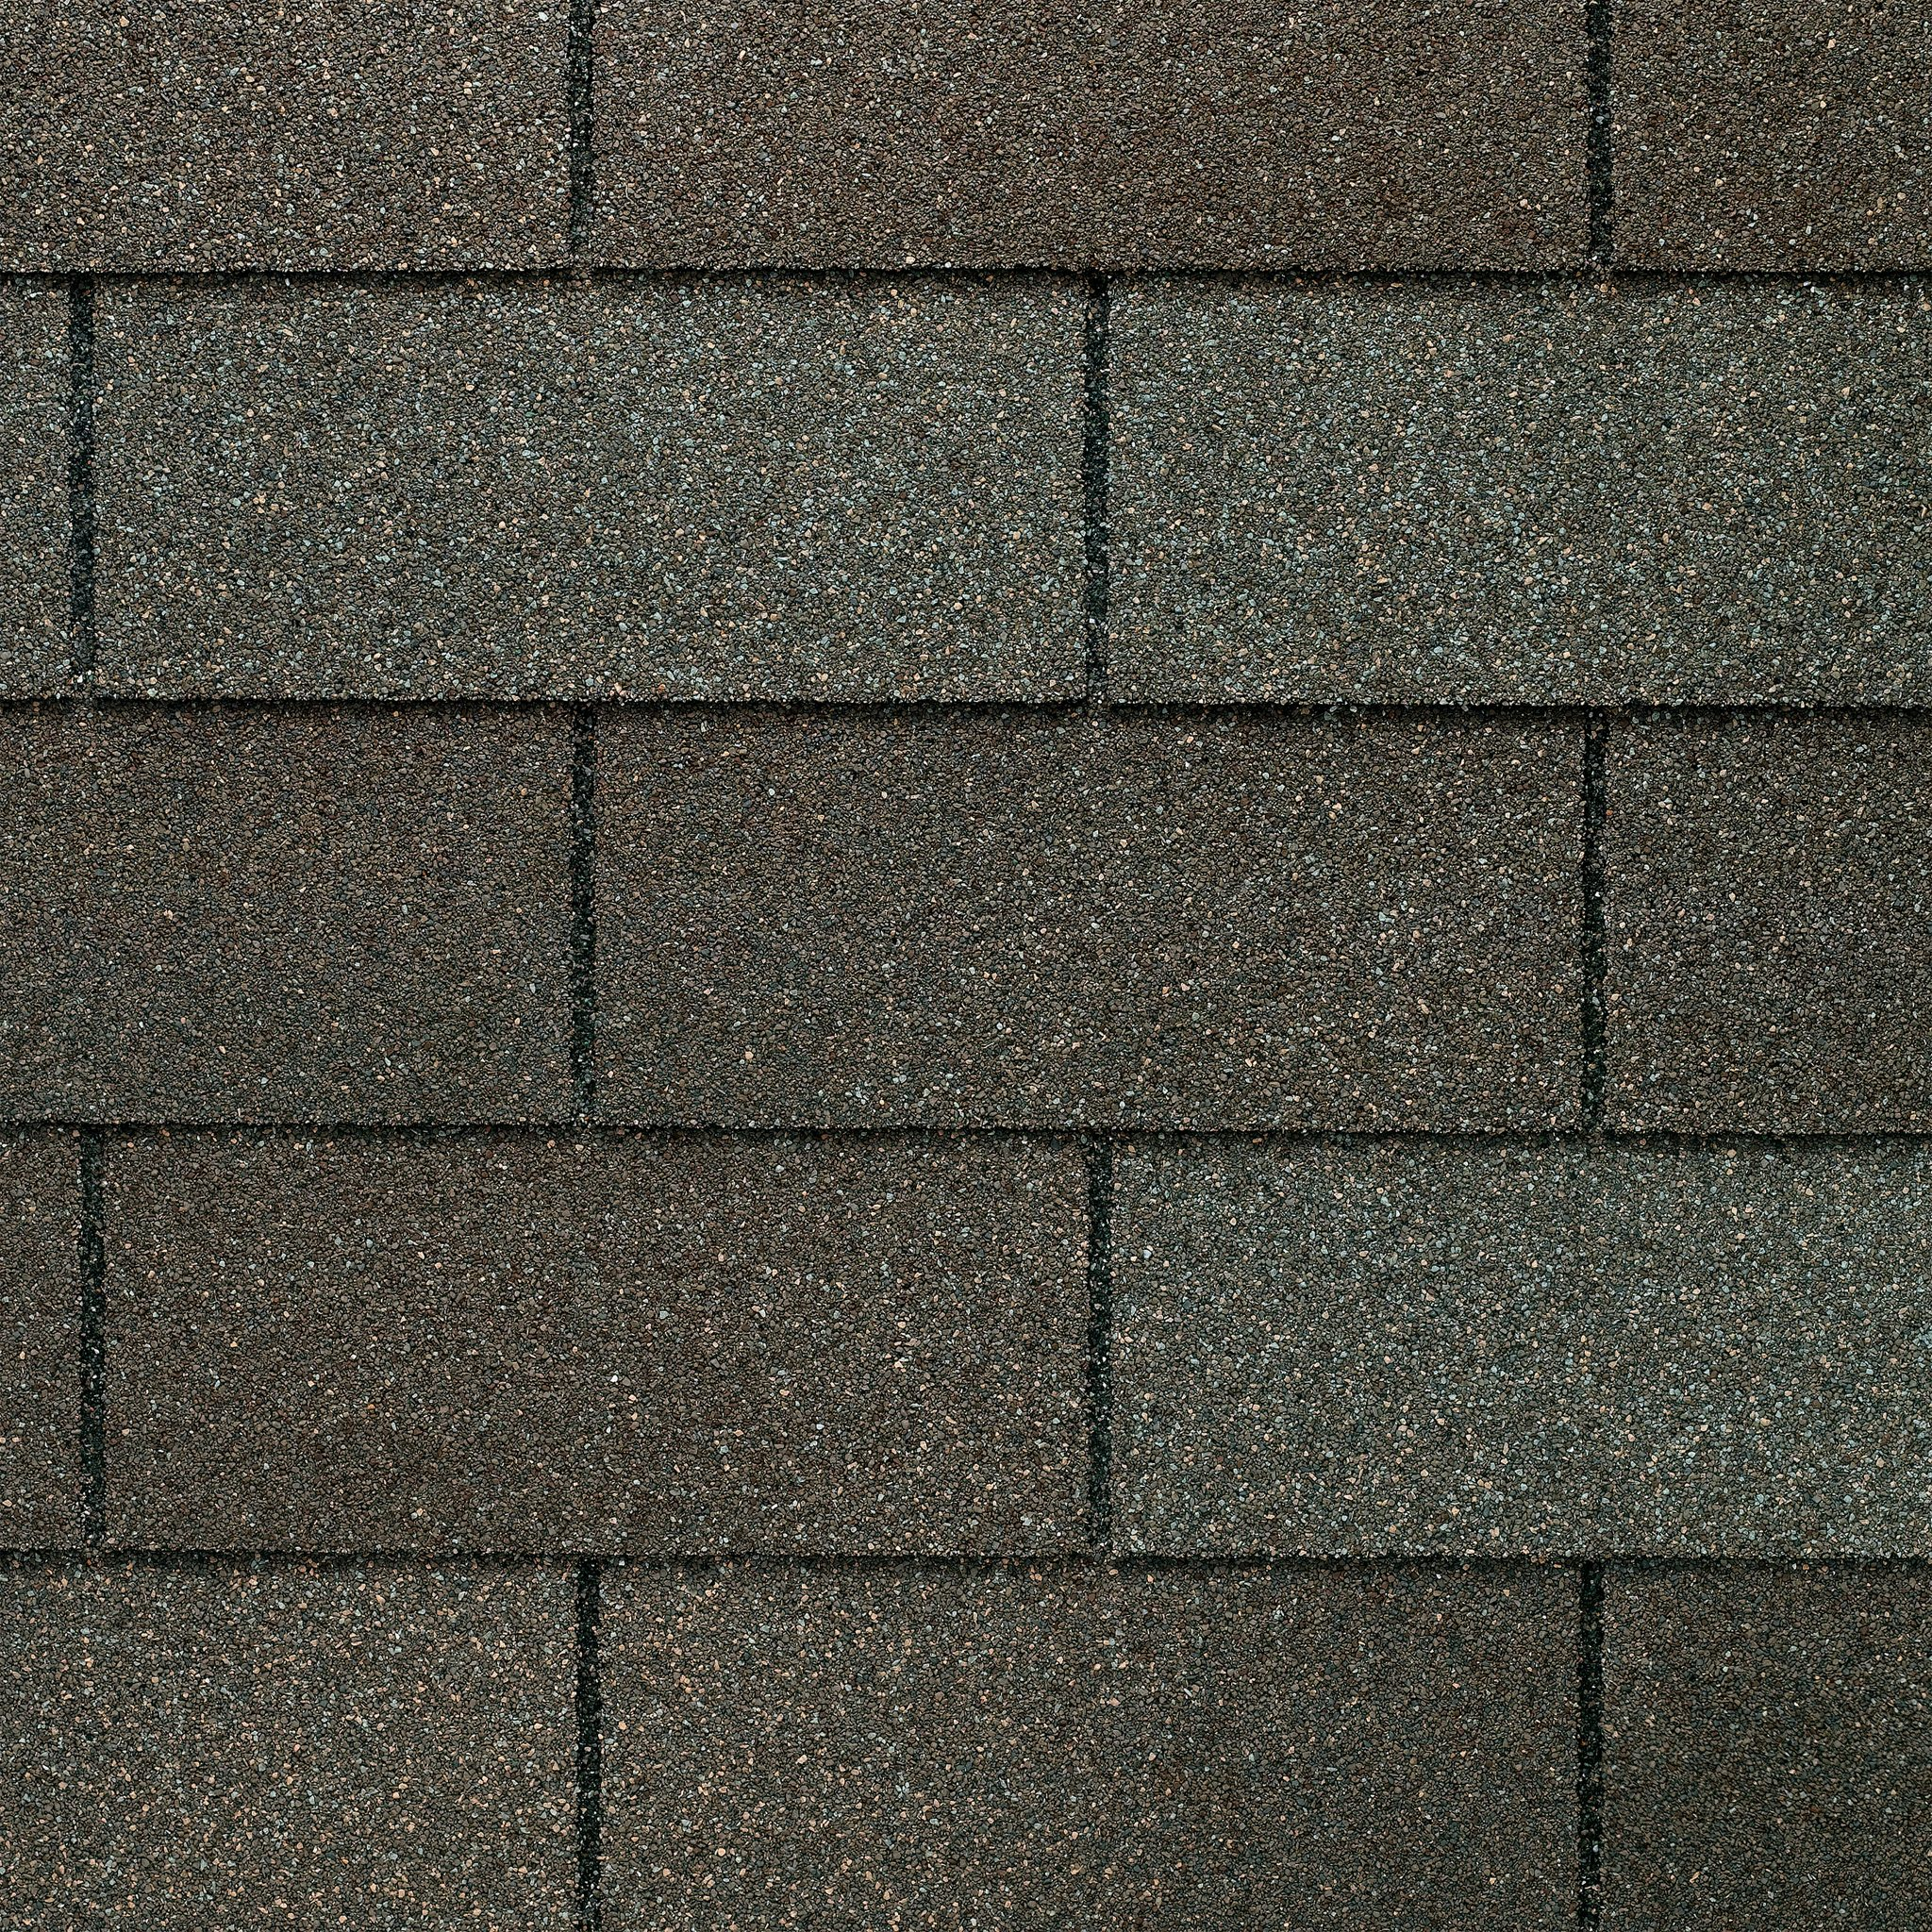 Close up photo of GAF's Royal Sovereign Weathered Gray shingle swatches